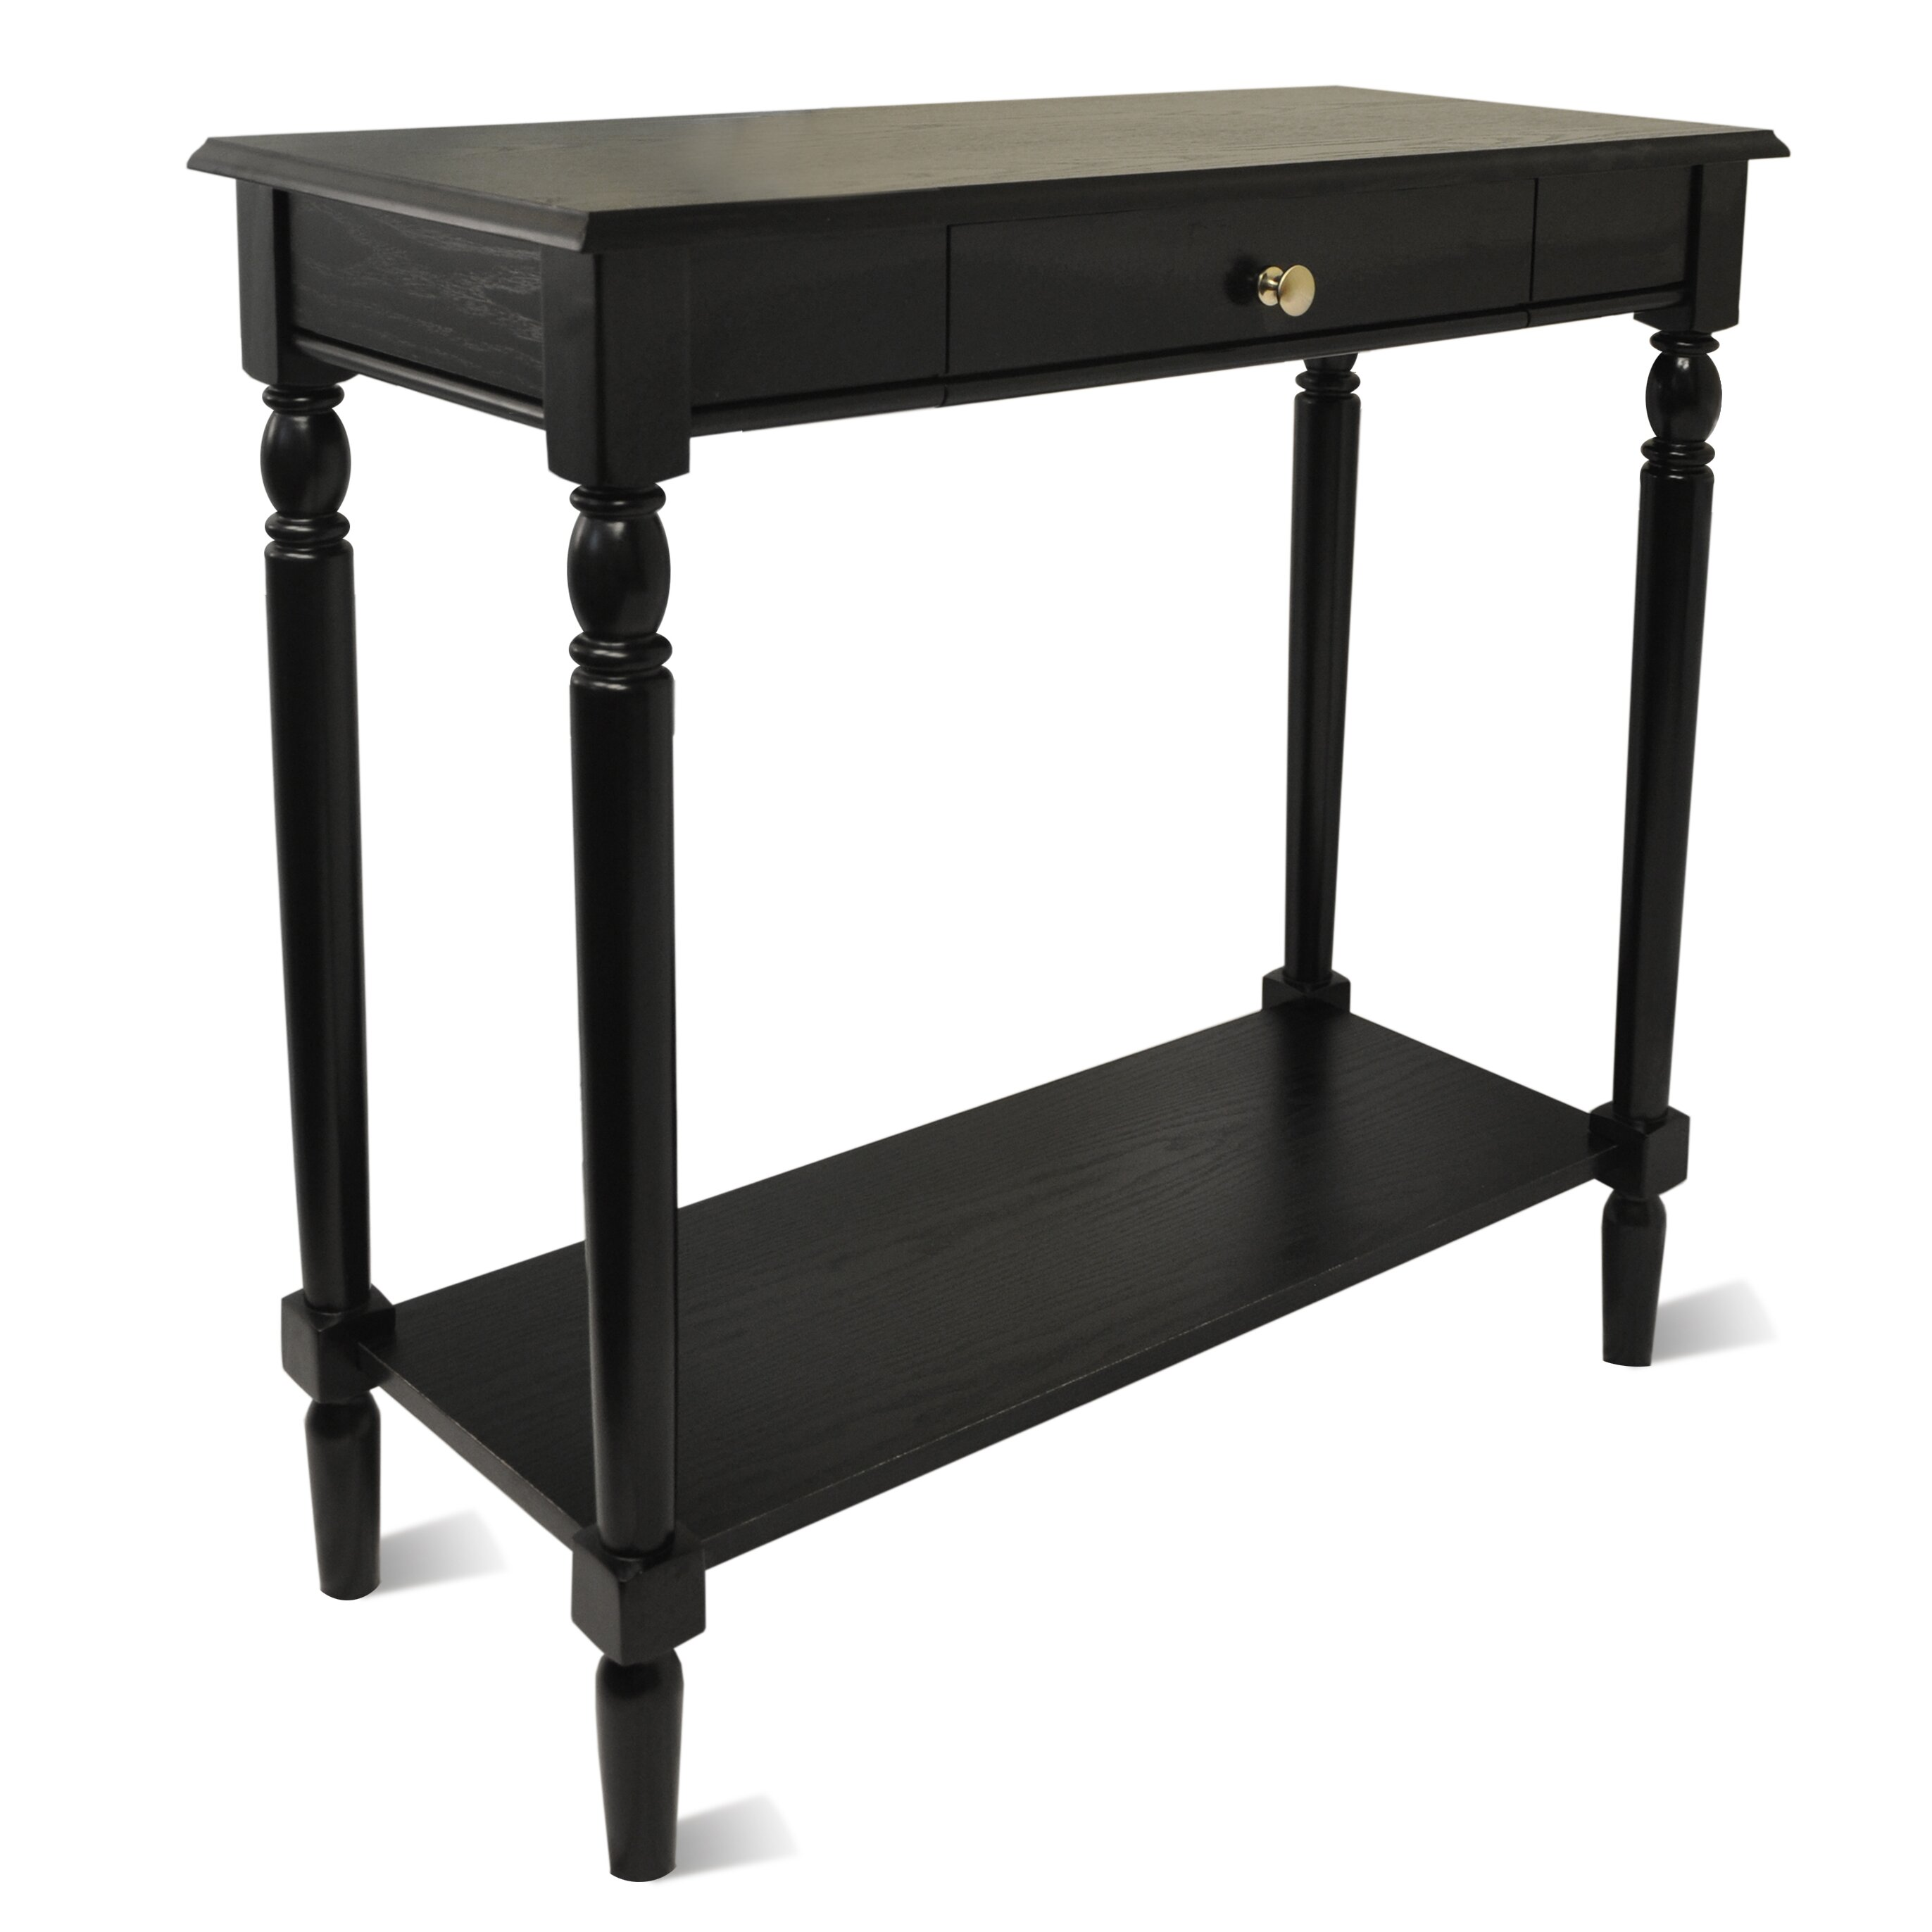 carlisle console table wayfair. Black Bedroom Furniture Sets. Home Design Ideas